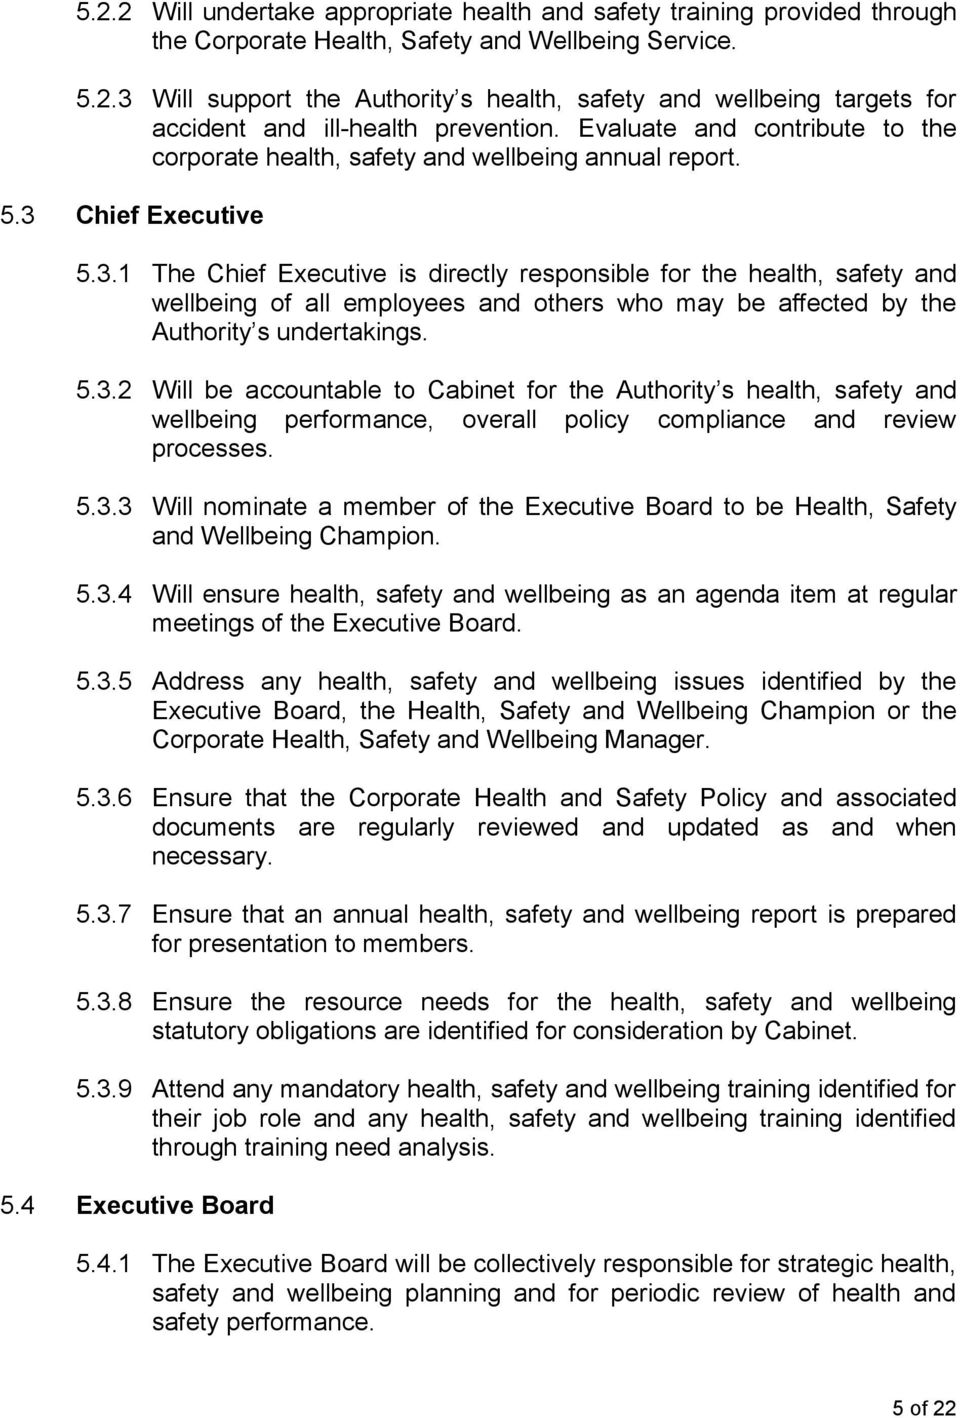 Chief Executive 5.3.1 The Chief Executive is directly responsible for the health, safety and wellbeing of all employees and others who may be affected by the Authority s undertakings. 5.3.2 Will be accountable to Cabinet for the Authority s health, safety and wellbeing performance, overall policy compliance and review processes.